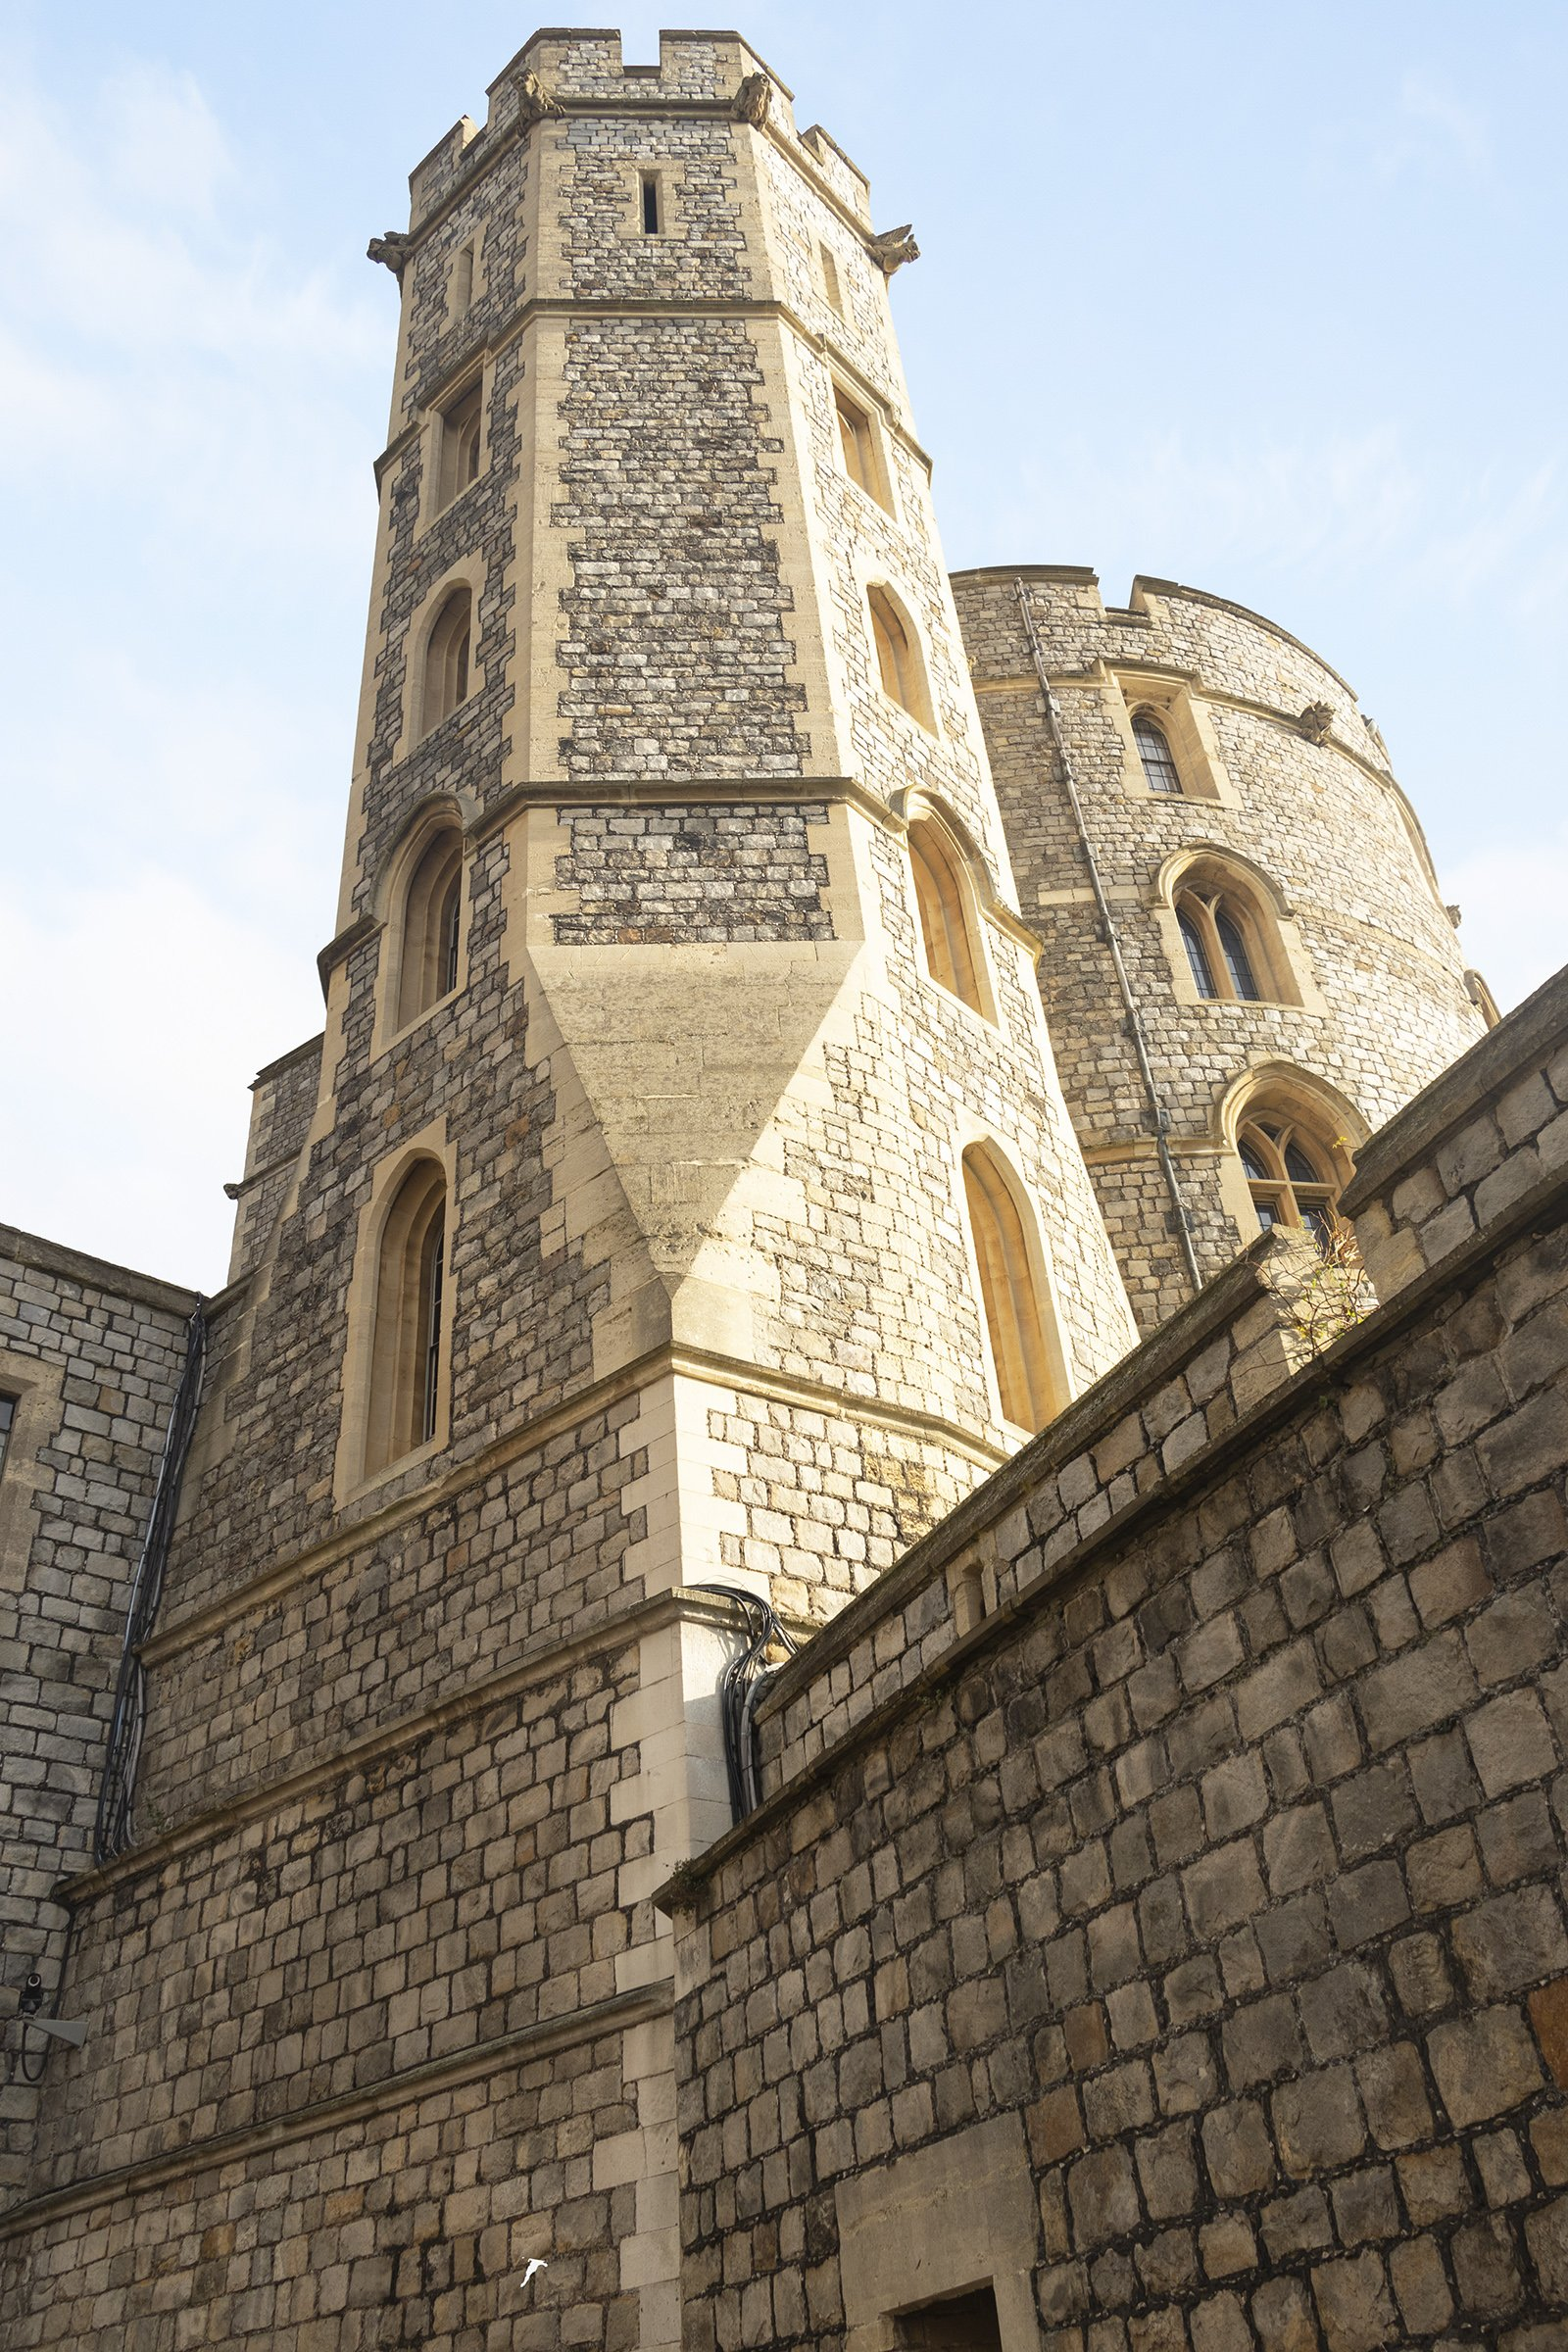 Edward III tower, Windsor Castle